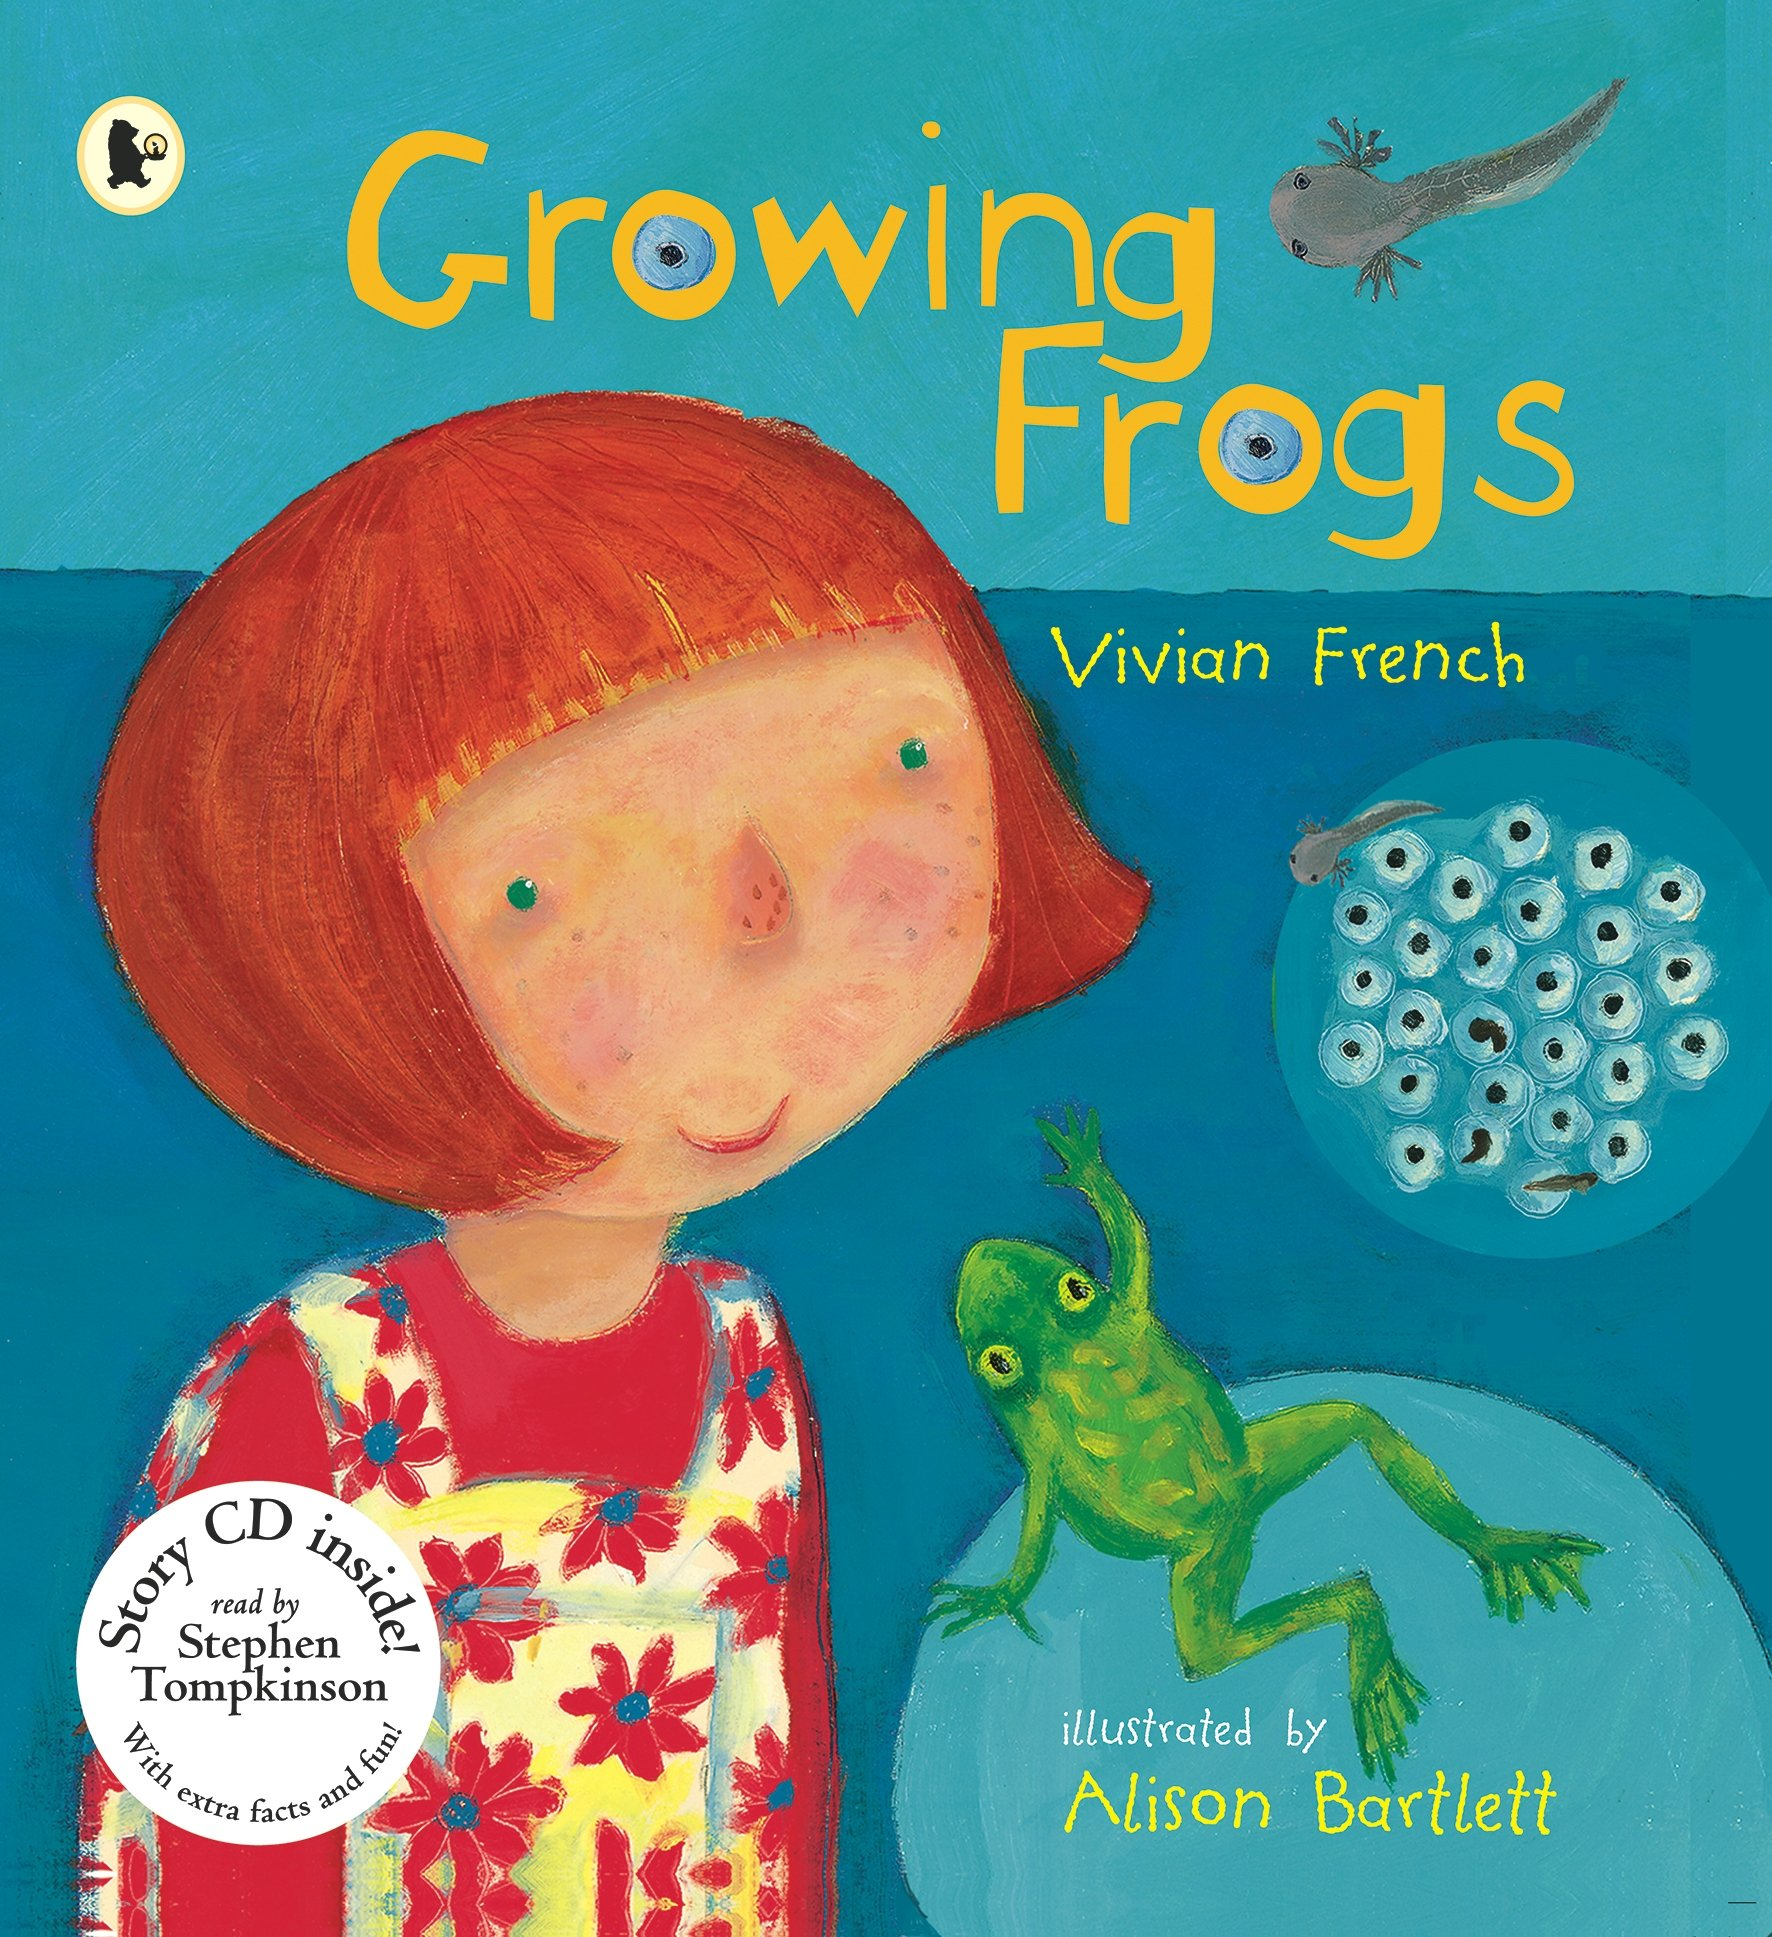 Growing Frogs (Nature Storybooks): Amazon.co.uk: French, Vivian, Bartlett,  Alison: Books